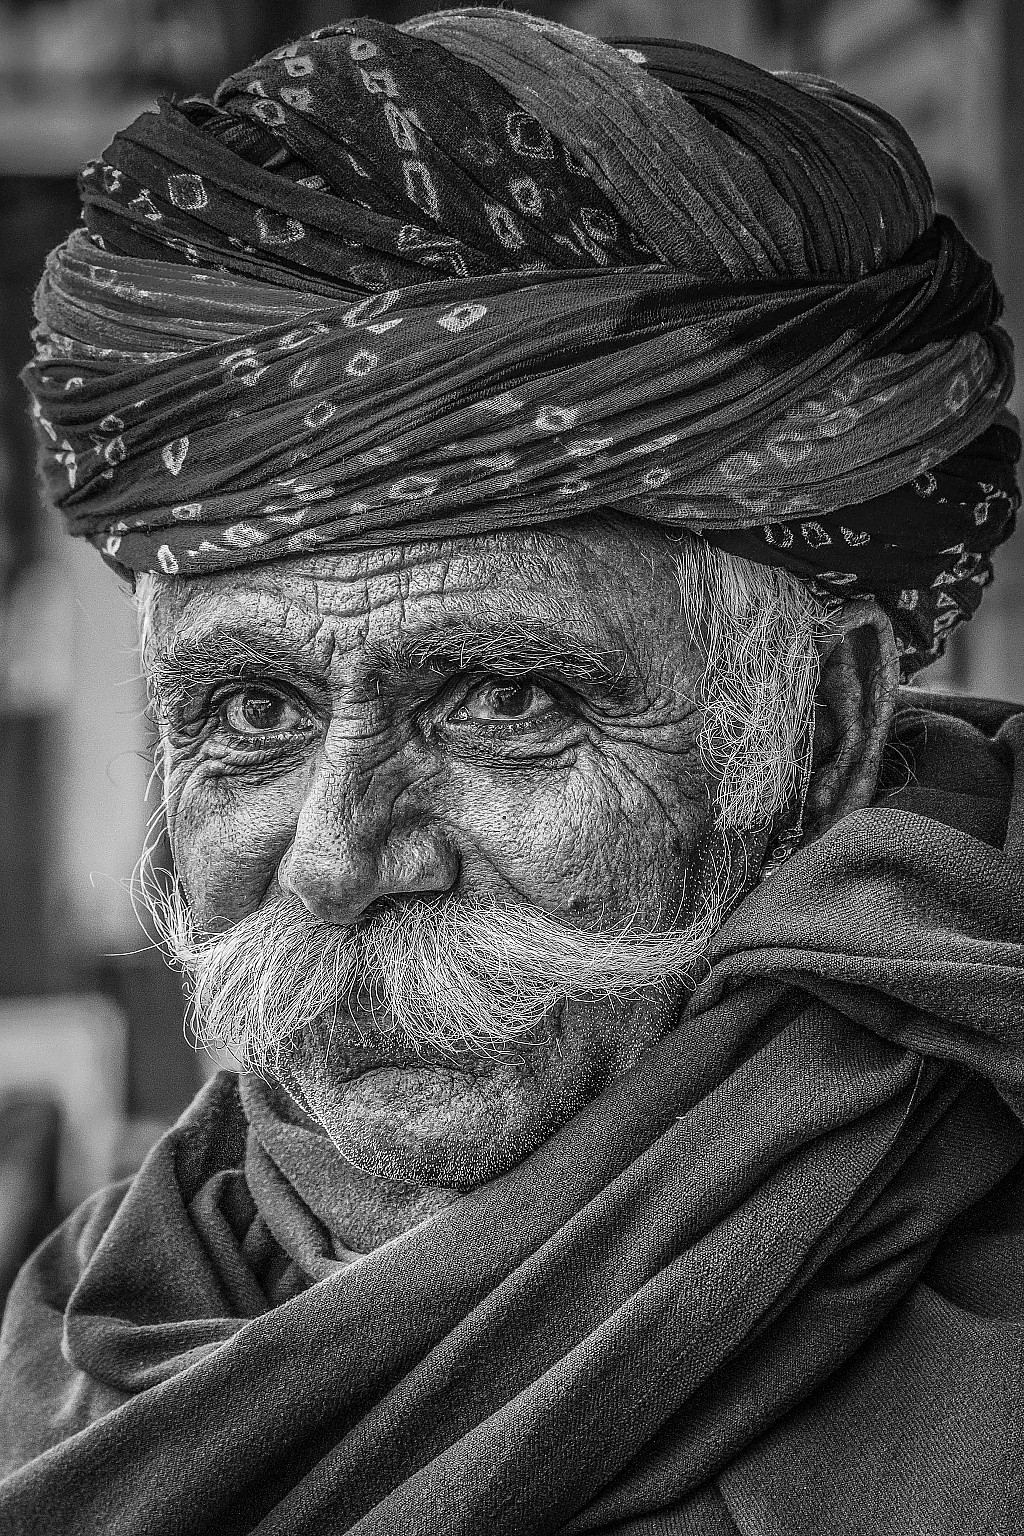 Black and white portraitphoto by arvind patwal